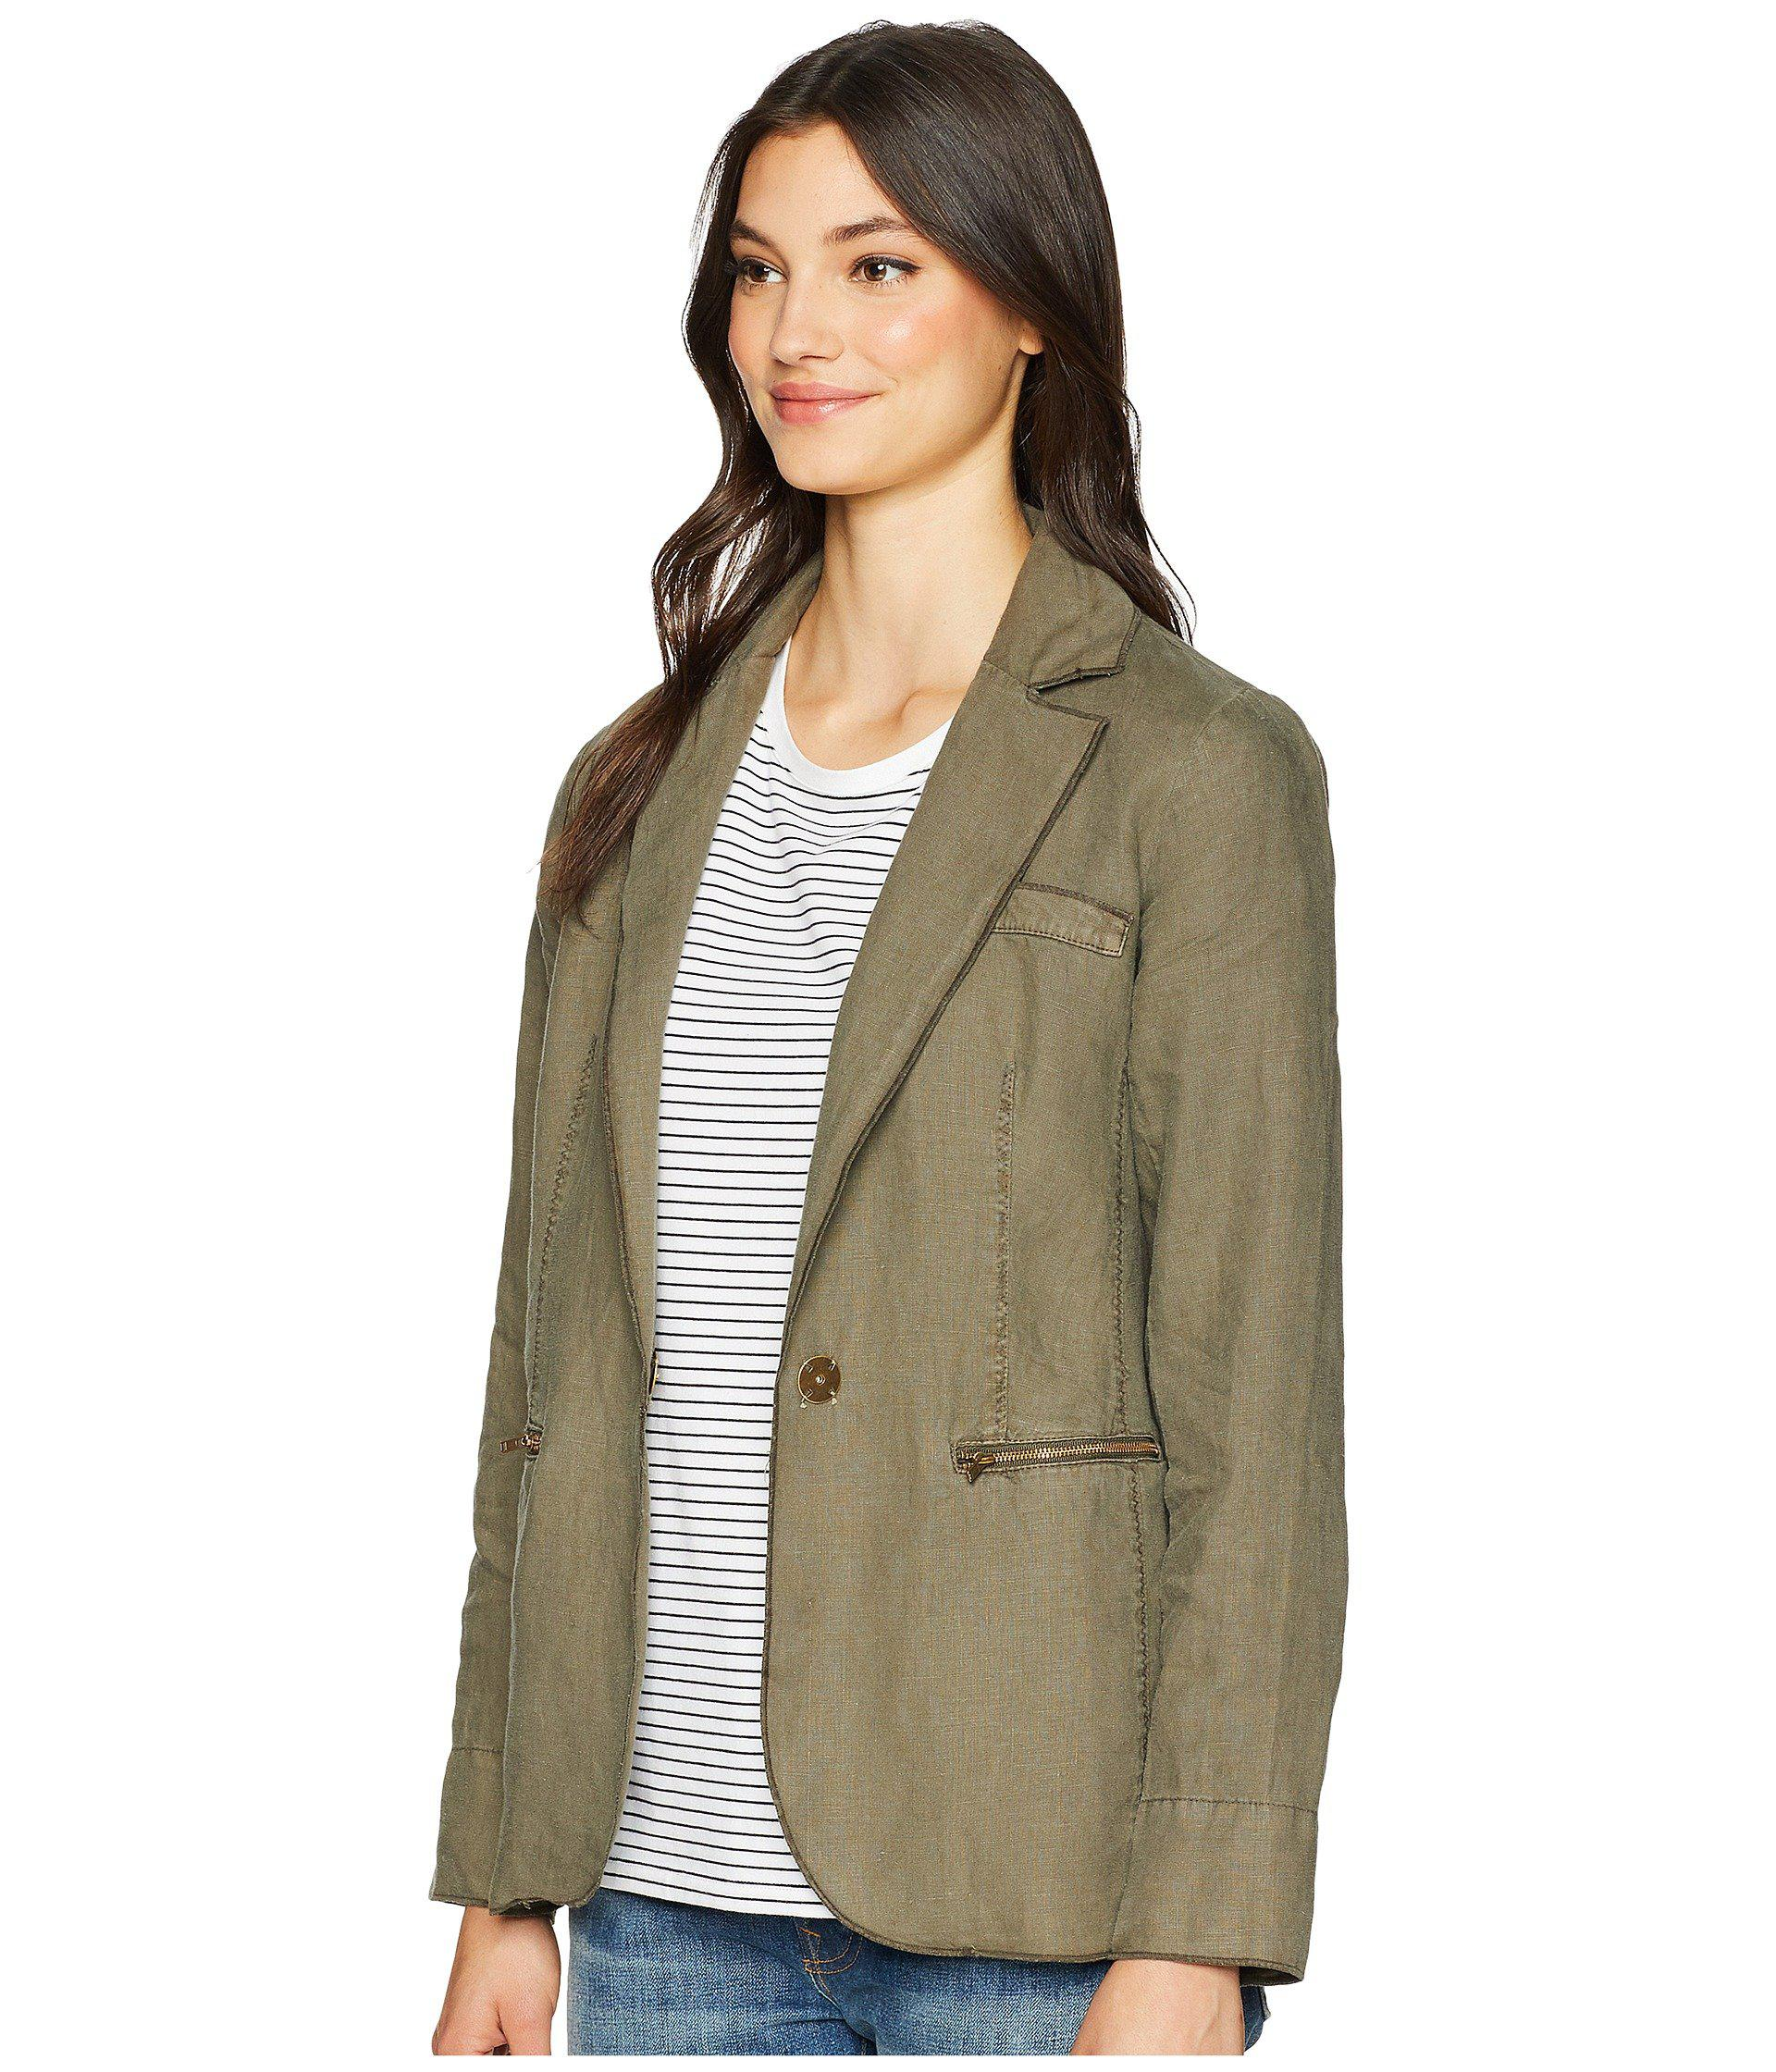 0b5ad0f6ce7 Lyst - Michael Stars Woven Linen Deconstructed Blazer in Green - Save 42%